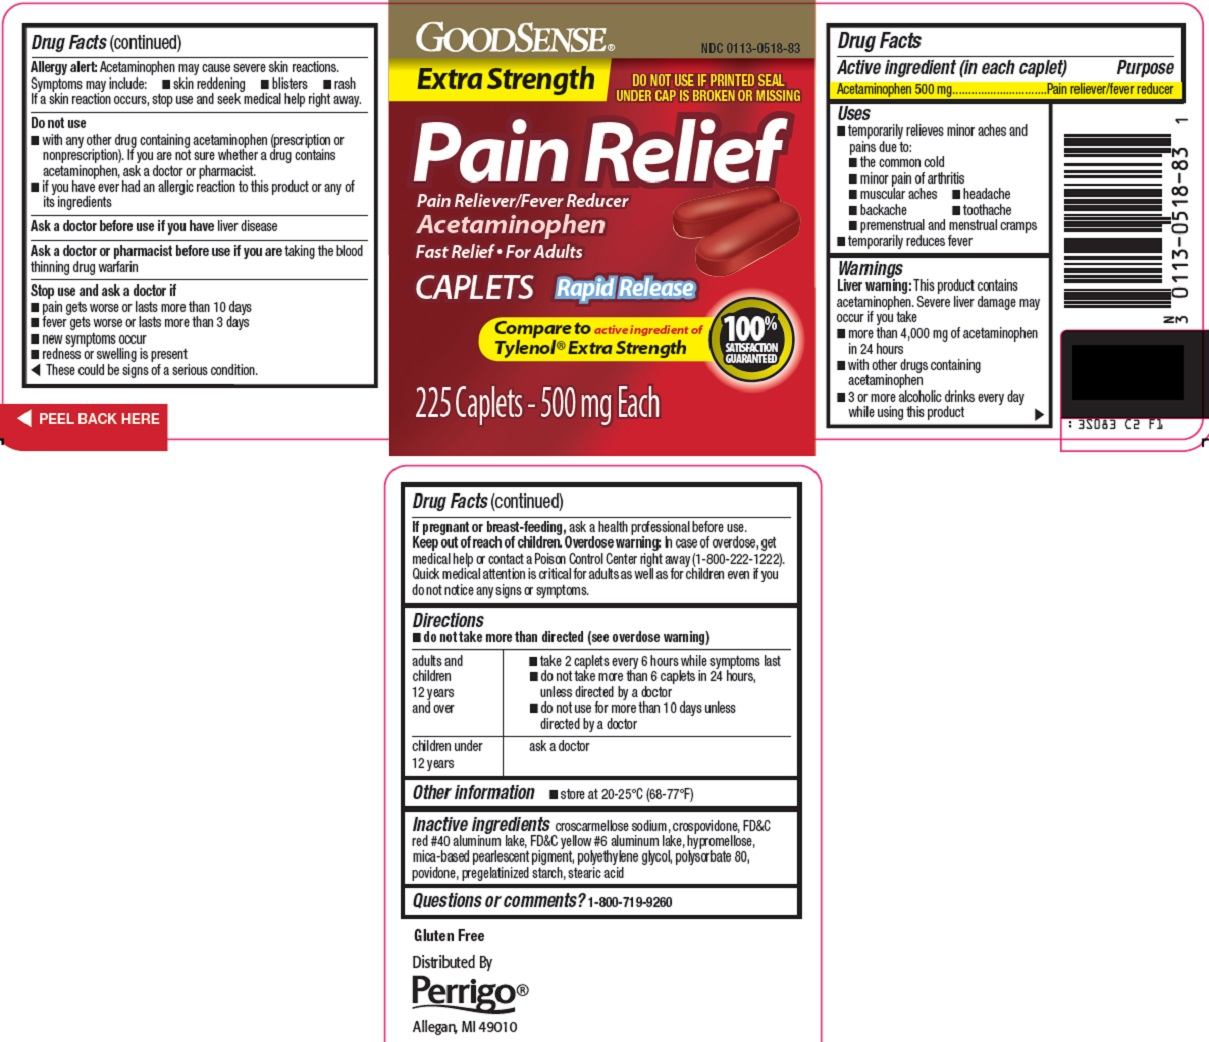 pain-relief-image